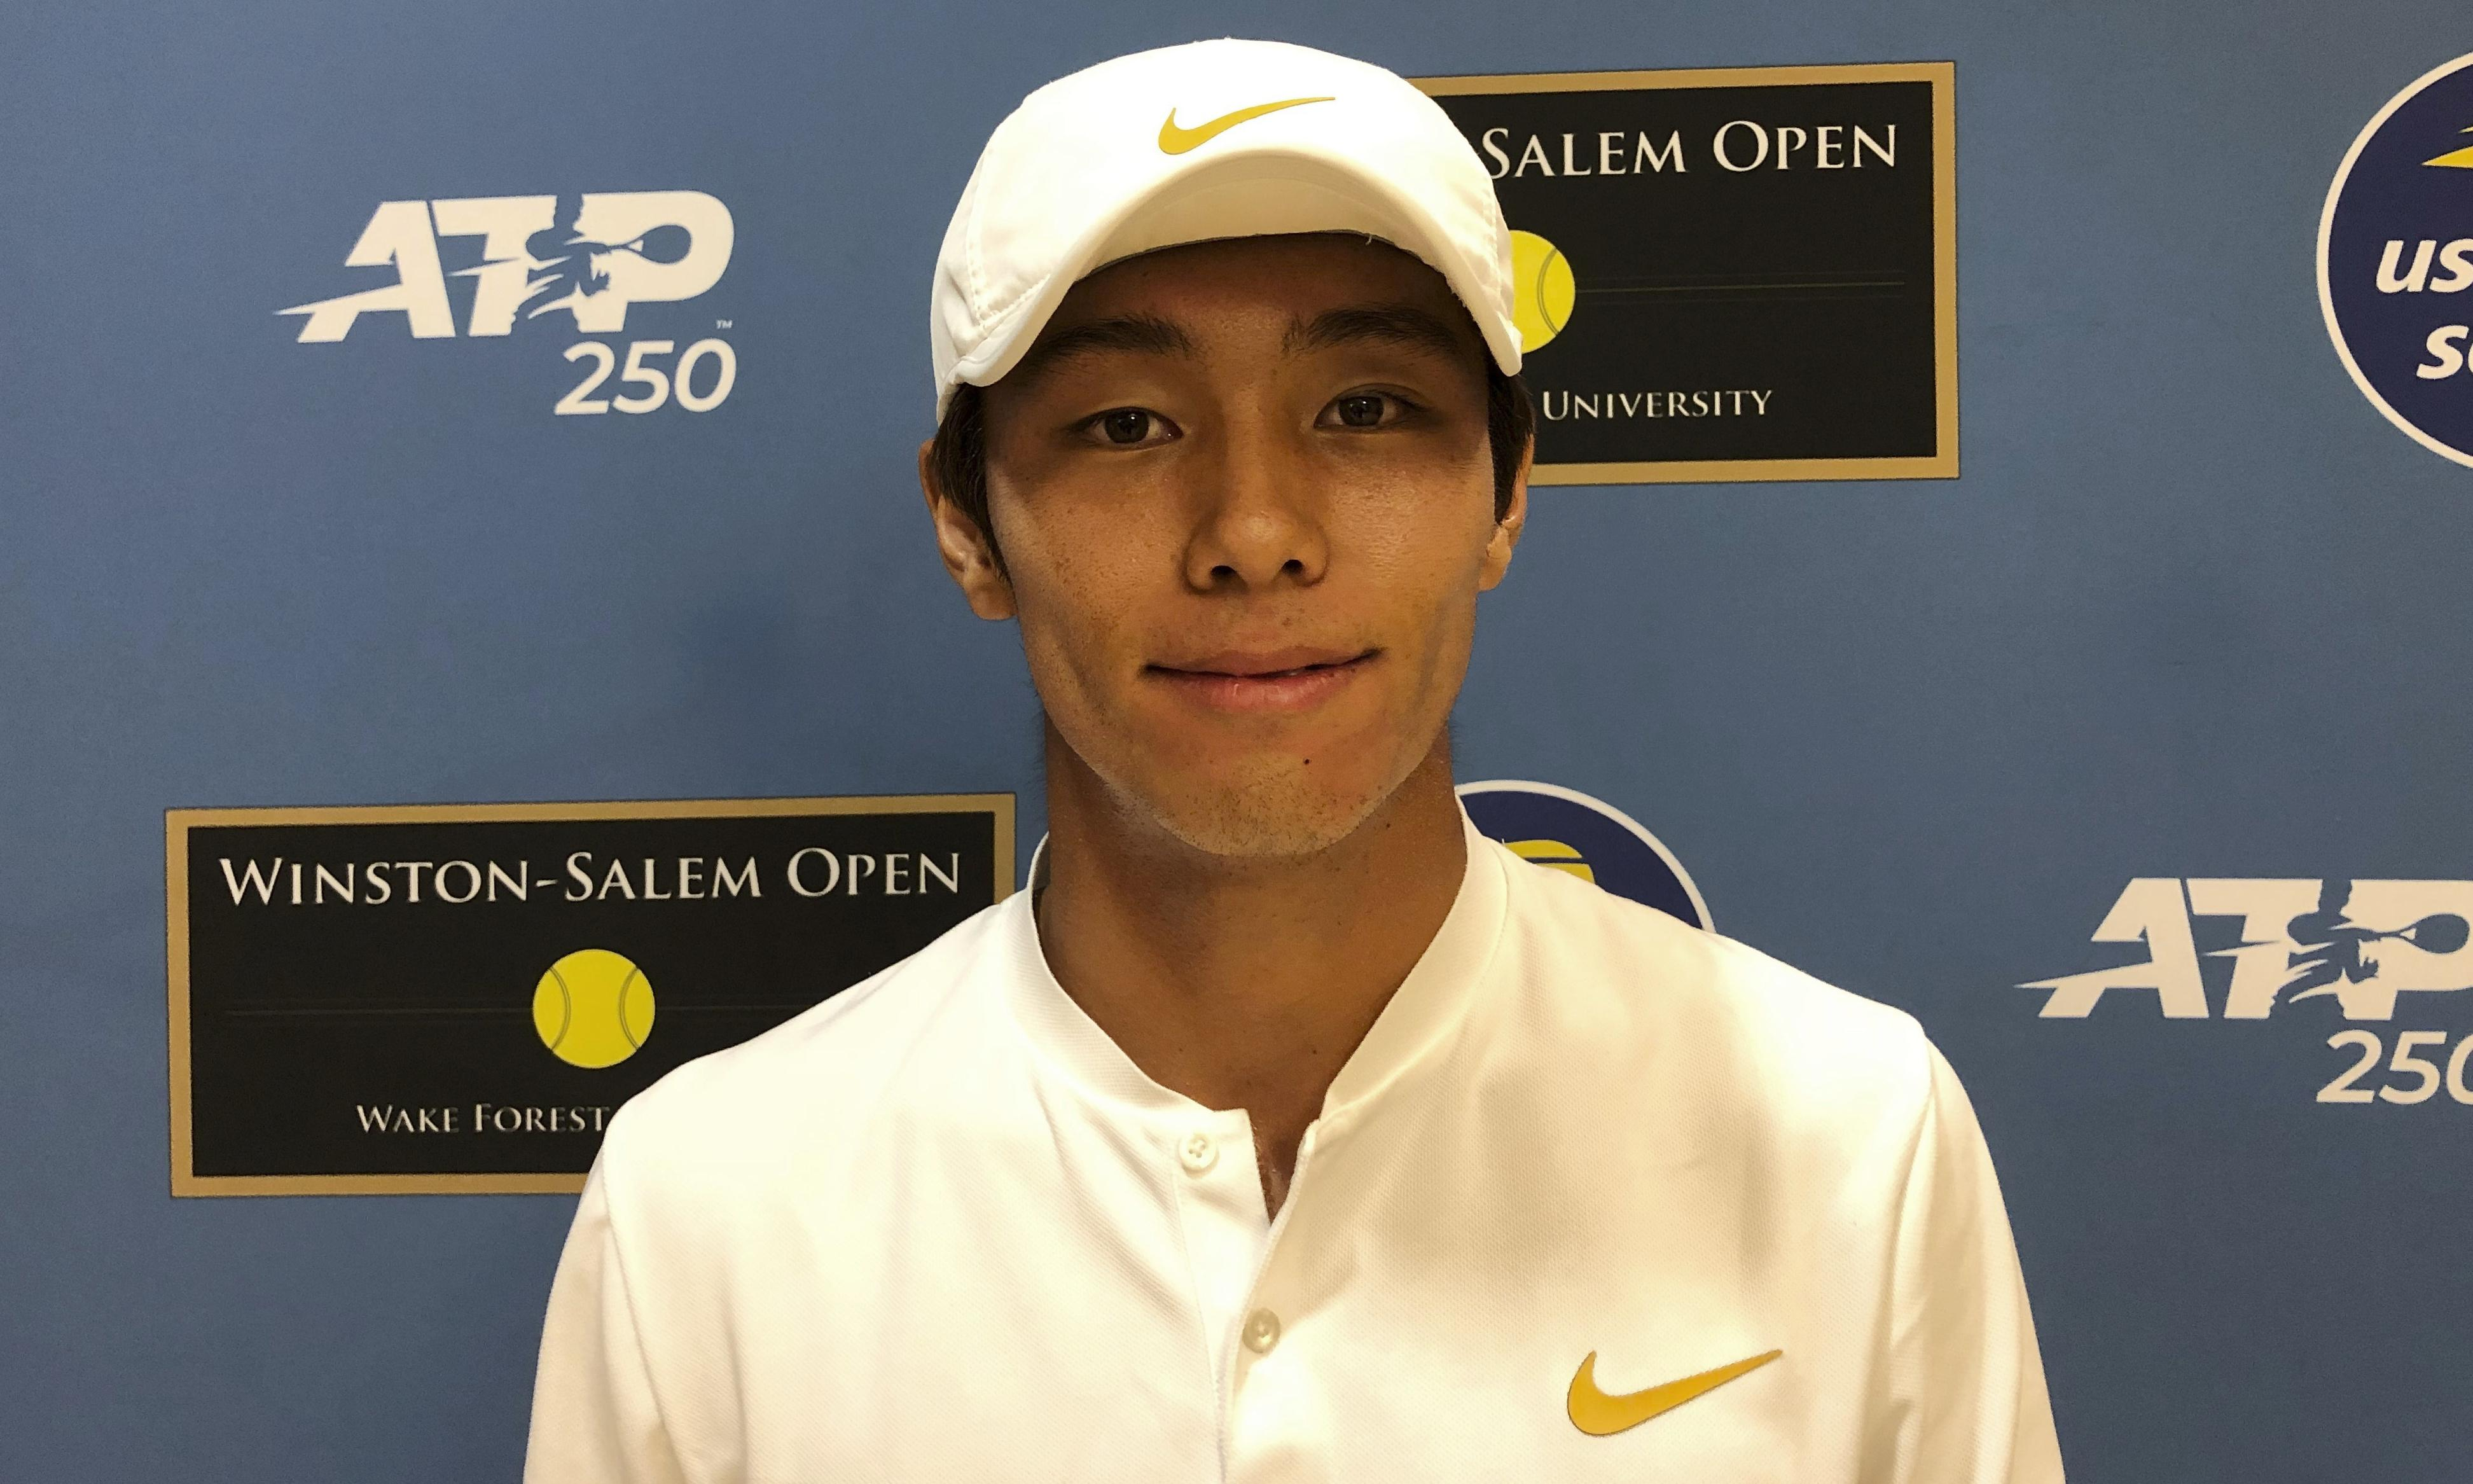 Lee Duck-hee becomes first deaf player to win ATP Tour main draw match